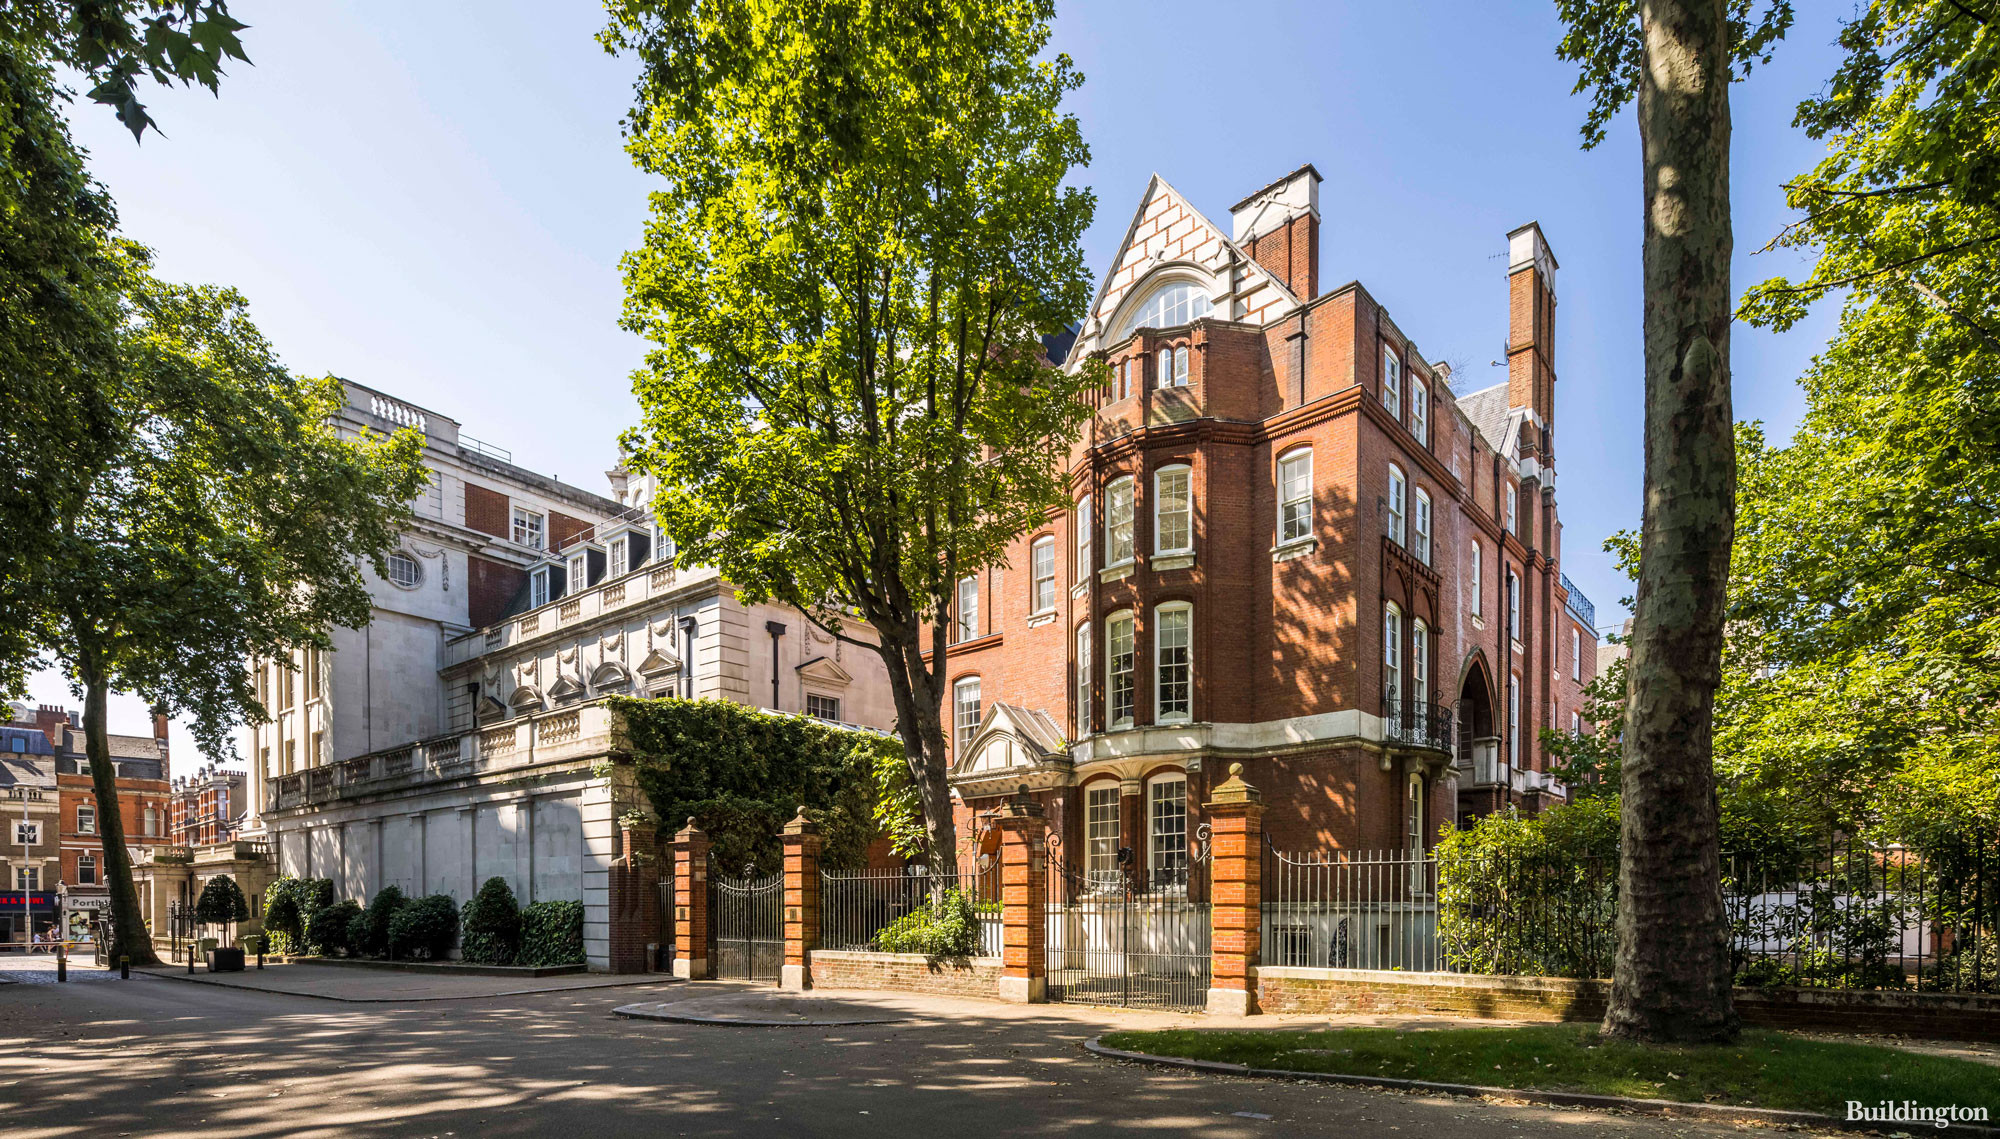 One Palace Green Grade II* listed building in Kensington is set to be restored and turned into luxury apartments by REDD.